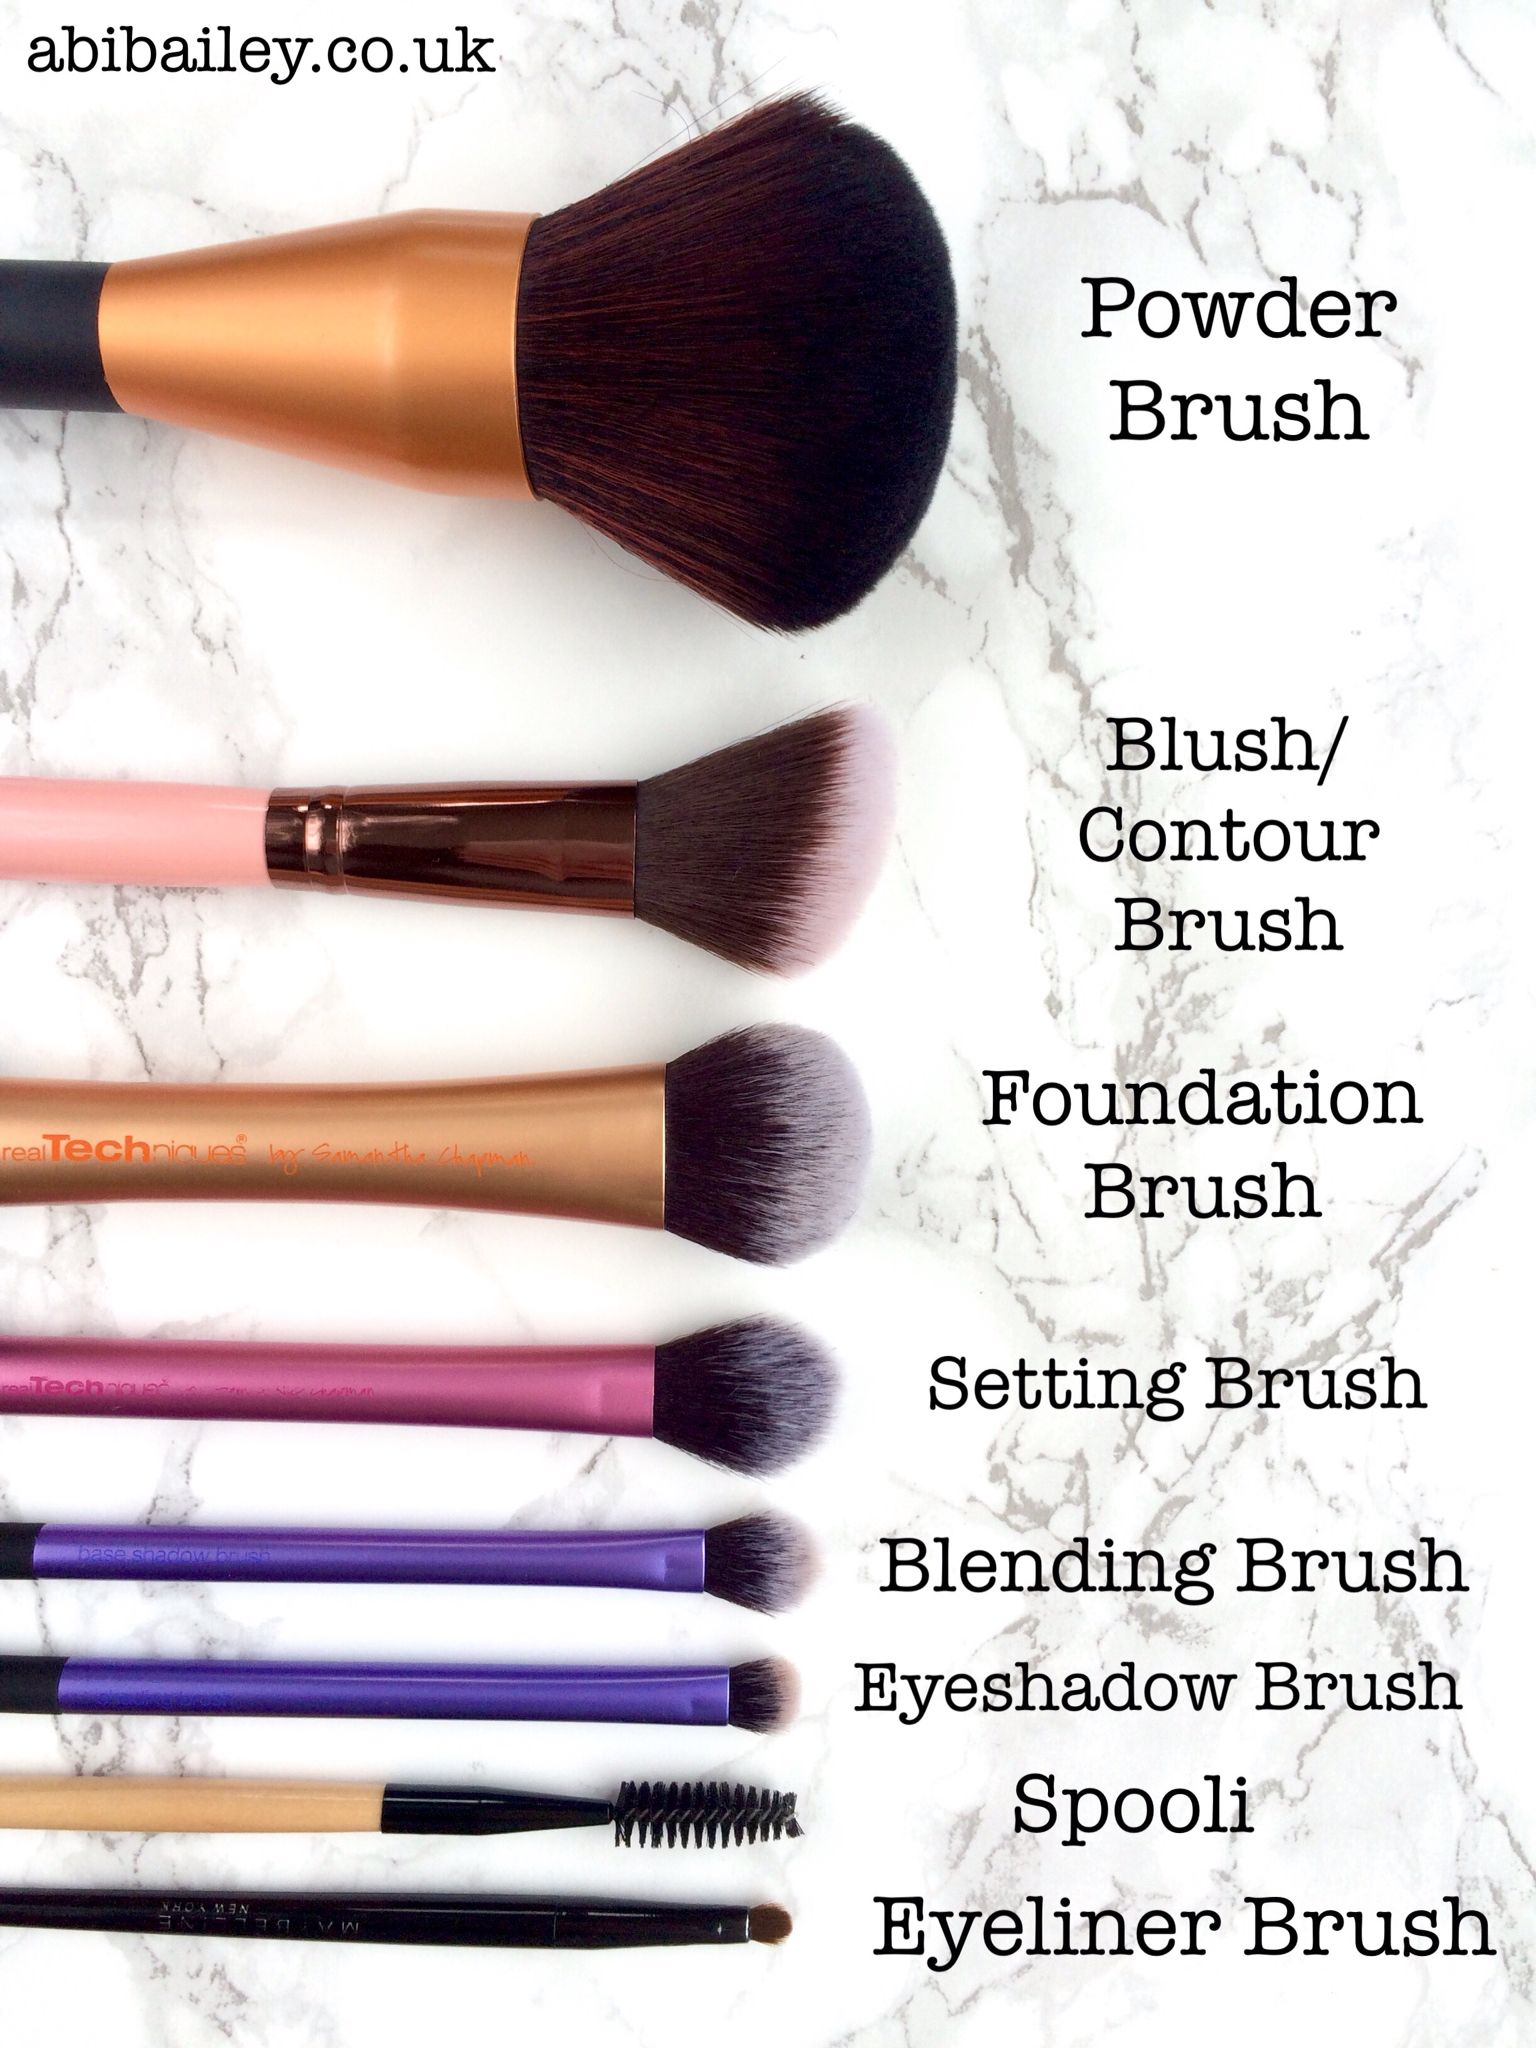 Make Up Brush Starter Kit abibailey.co.uk Makeup kit